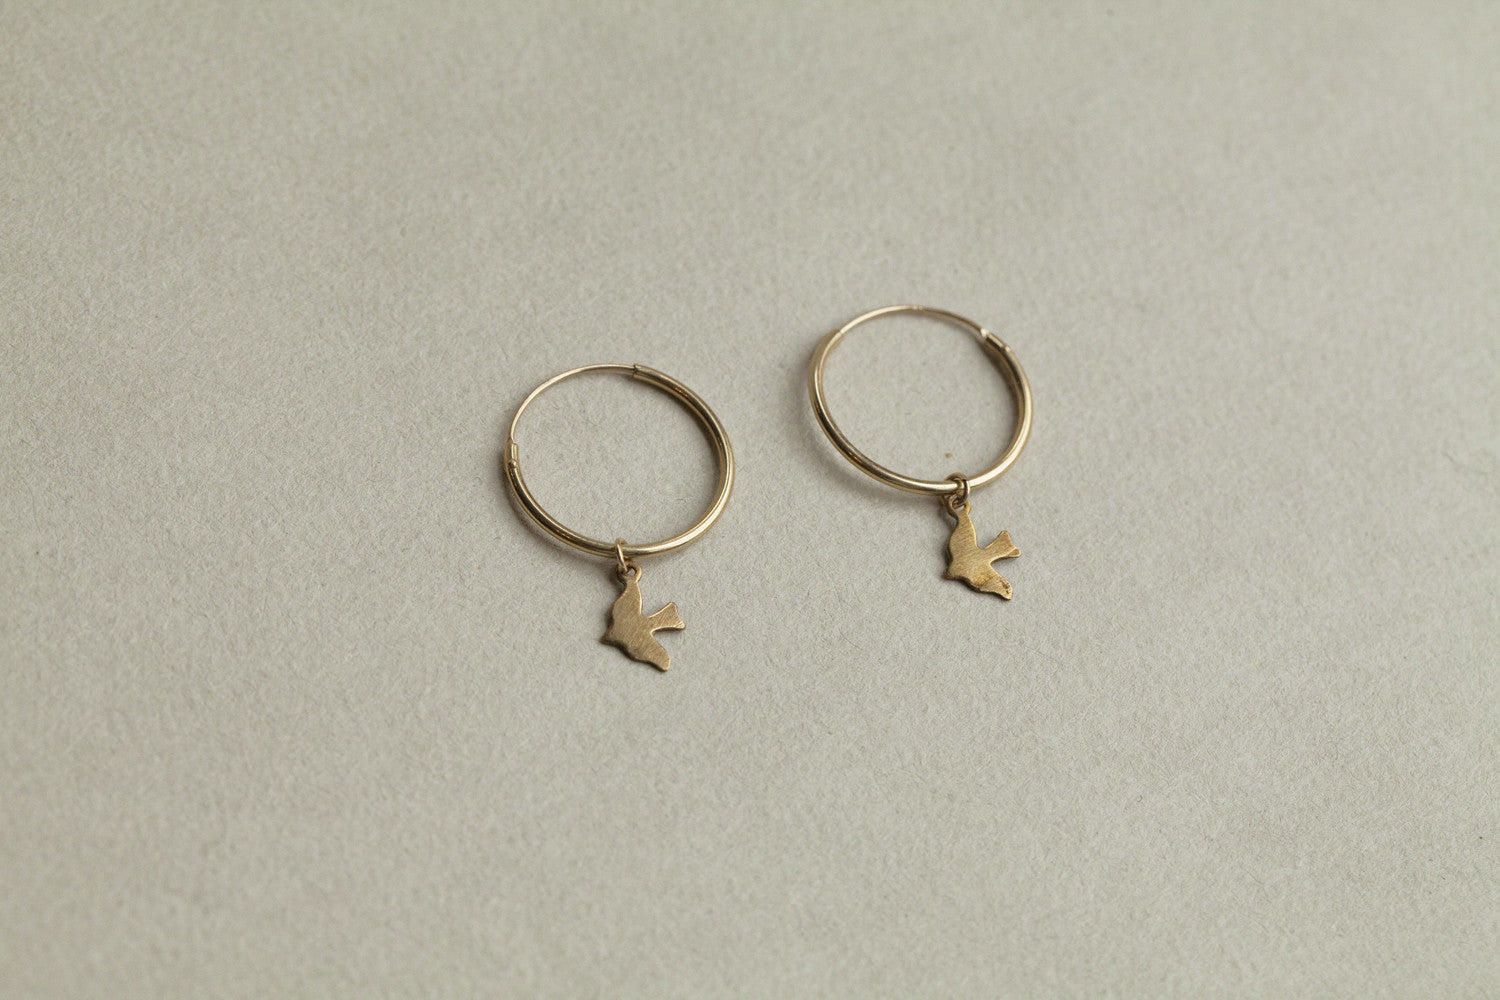 also by Alice Eden - Dickie Bird Range including hoops, bracelet and studs